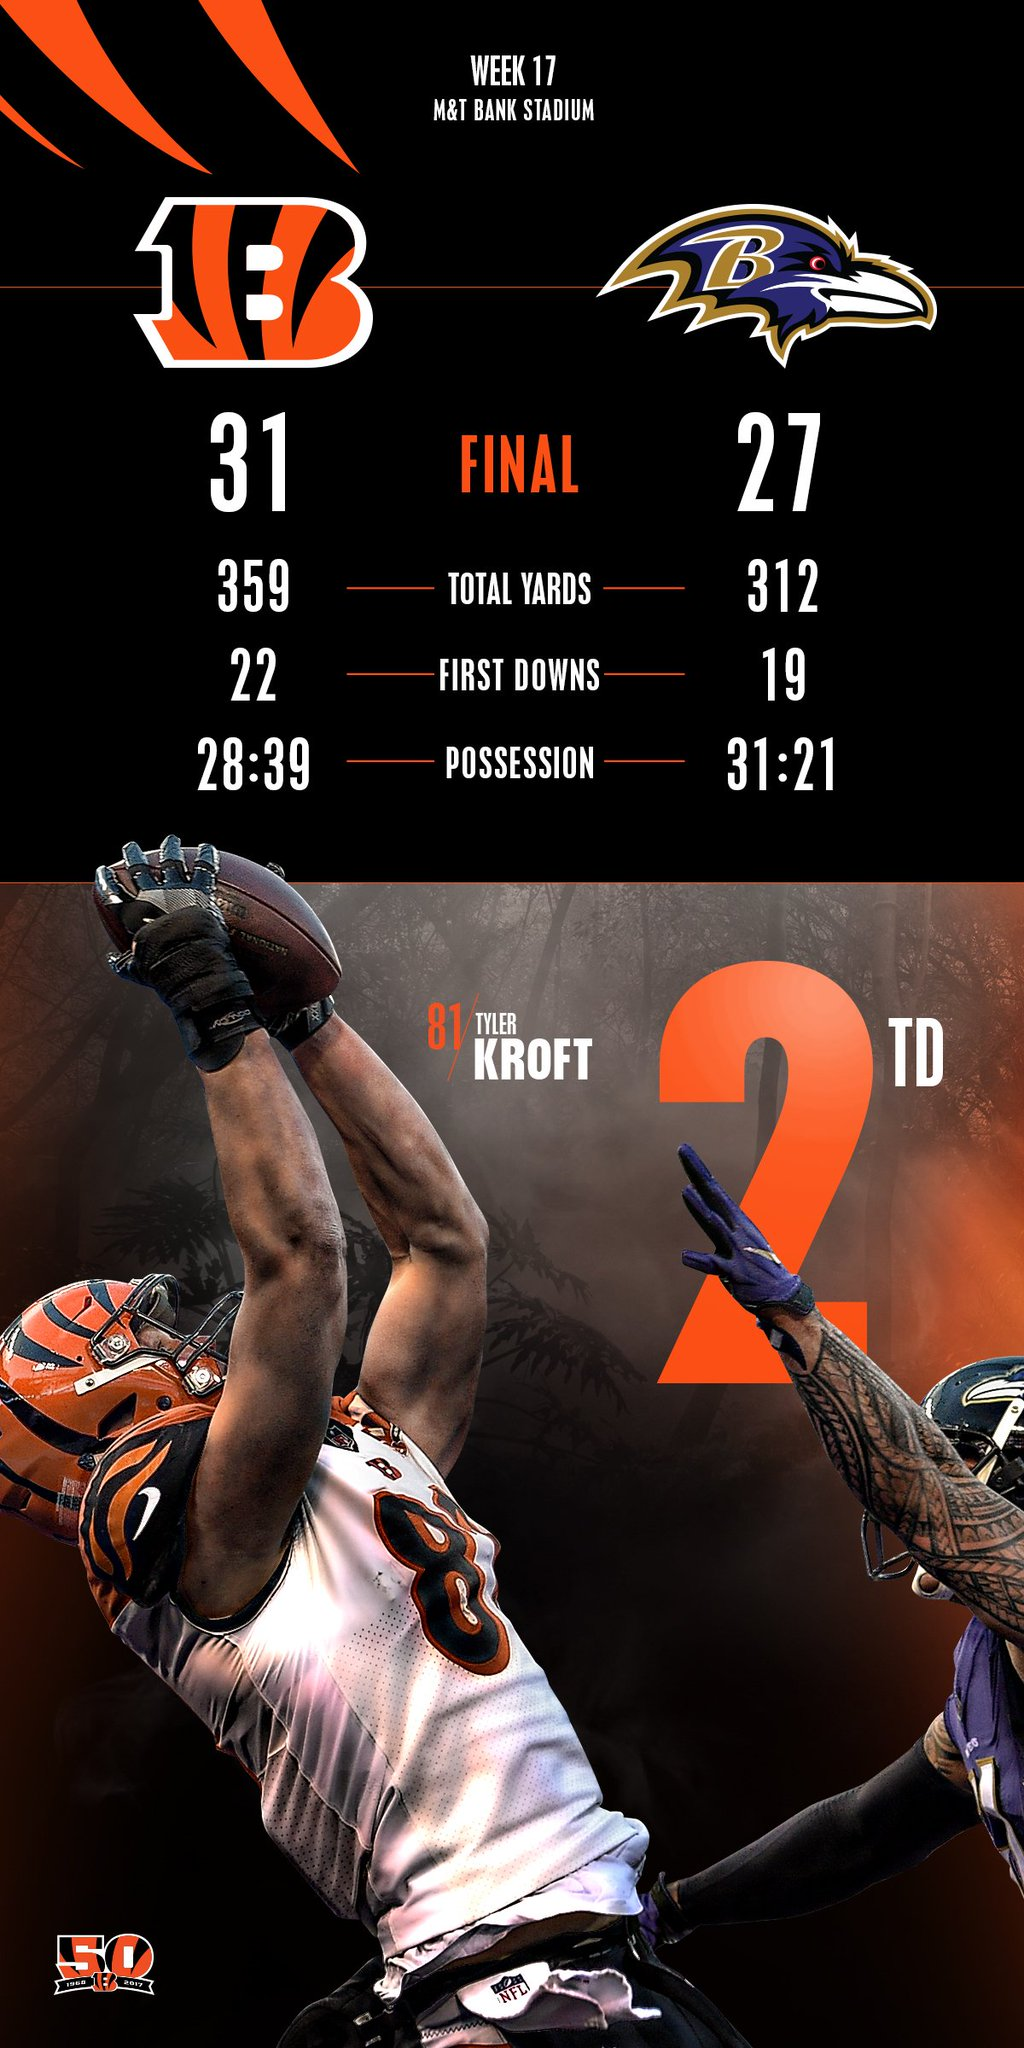 Ending the season with a WIN! #CINvsBAL #Bengals50  FULL HIGHLIGHTS: https://t.co/dlY3VdEkVT https://t.co/gDUSCoX6Cw